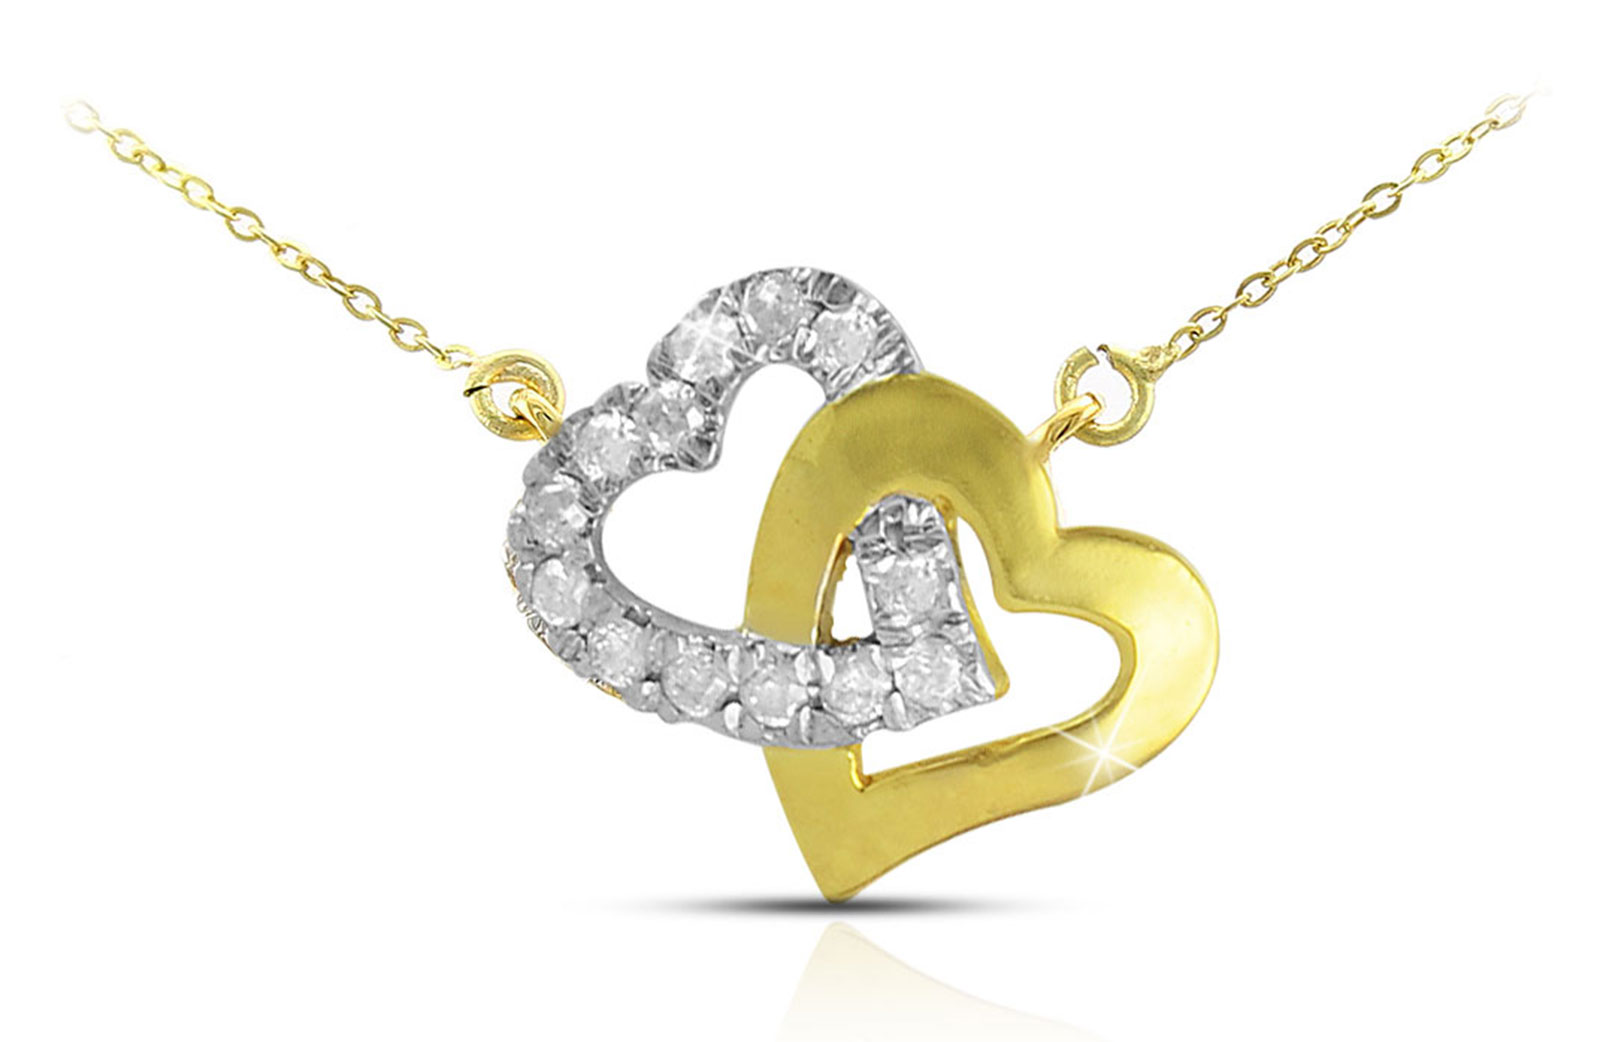 Vera Perla 18K Solid Gold and 0.15Cts Diamonds Interlocking Hearts Necklace